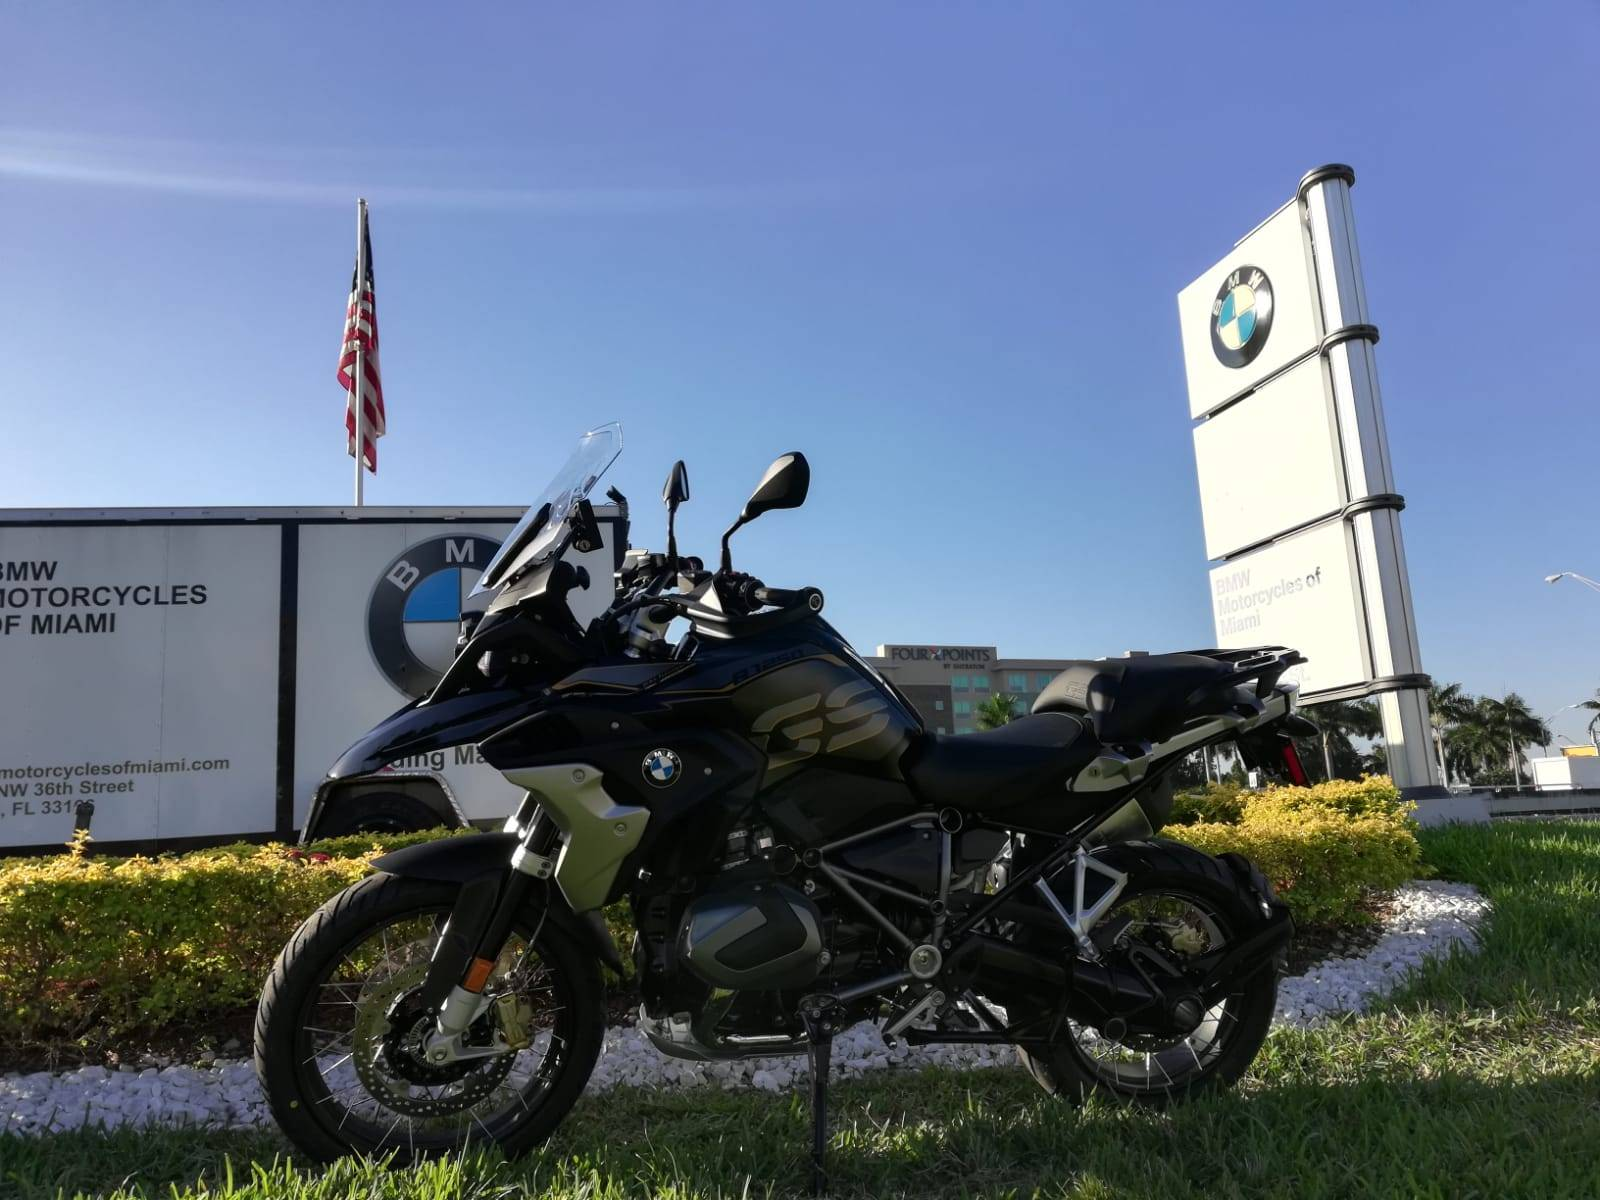 New 2019 BMW R 1250 GS for sale, BMW R 1250GS for sale, BMW Motorcycle GS, new BMW GS, Spirit of GS, BMW Motorcycles of Miami, Motorcycles of Miami, Motorcycles Miami, New Motorcycles, Used Motorcycles, pre-owned. #BMWMotorcyclesOfMiami #MotorcyclesOfMiami. - Photo 6